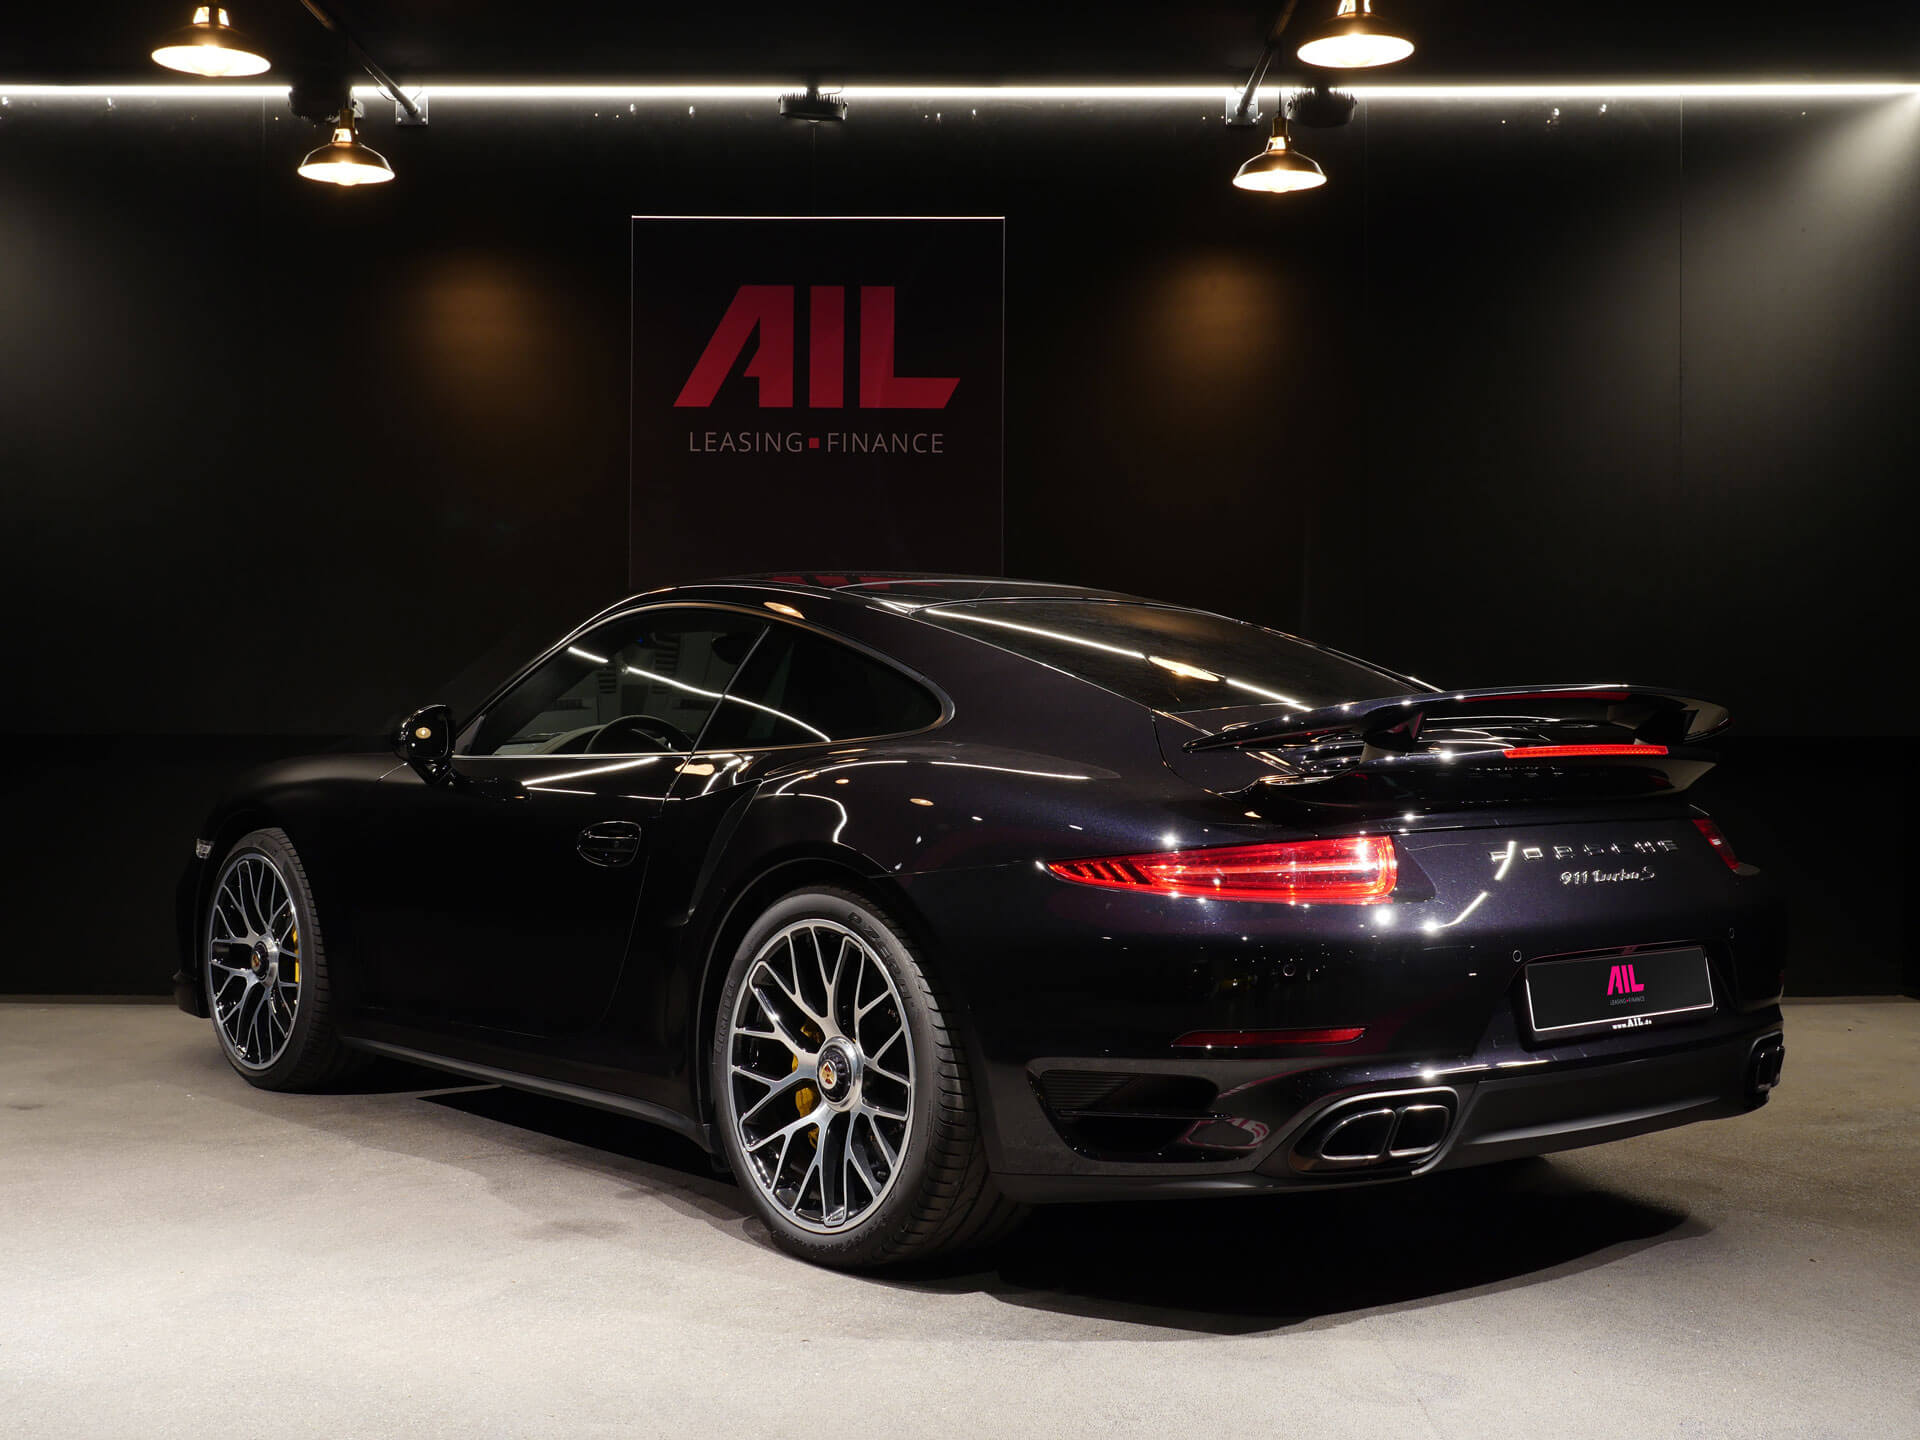 AIL Porsche 911 991 Turbo S Ceramic LED Sport Chrono Paket 1